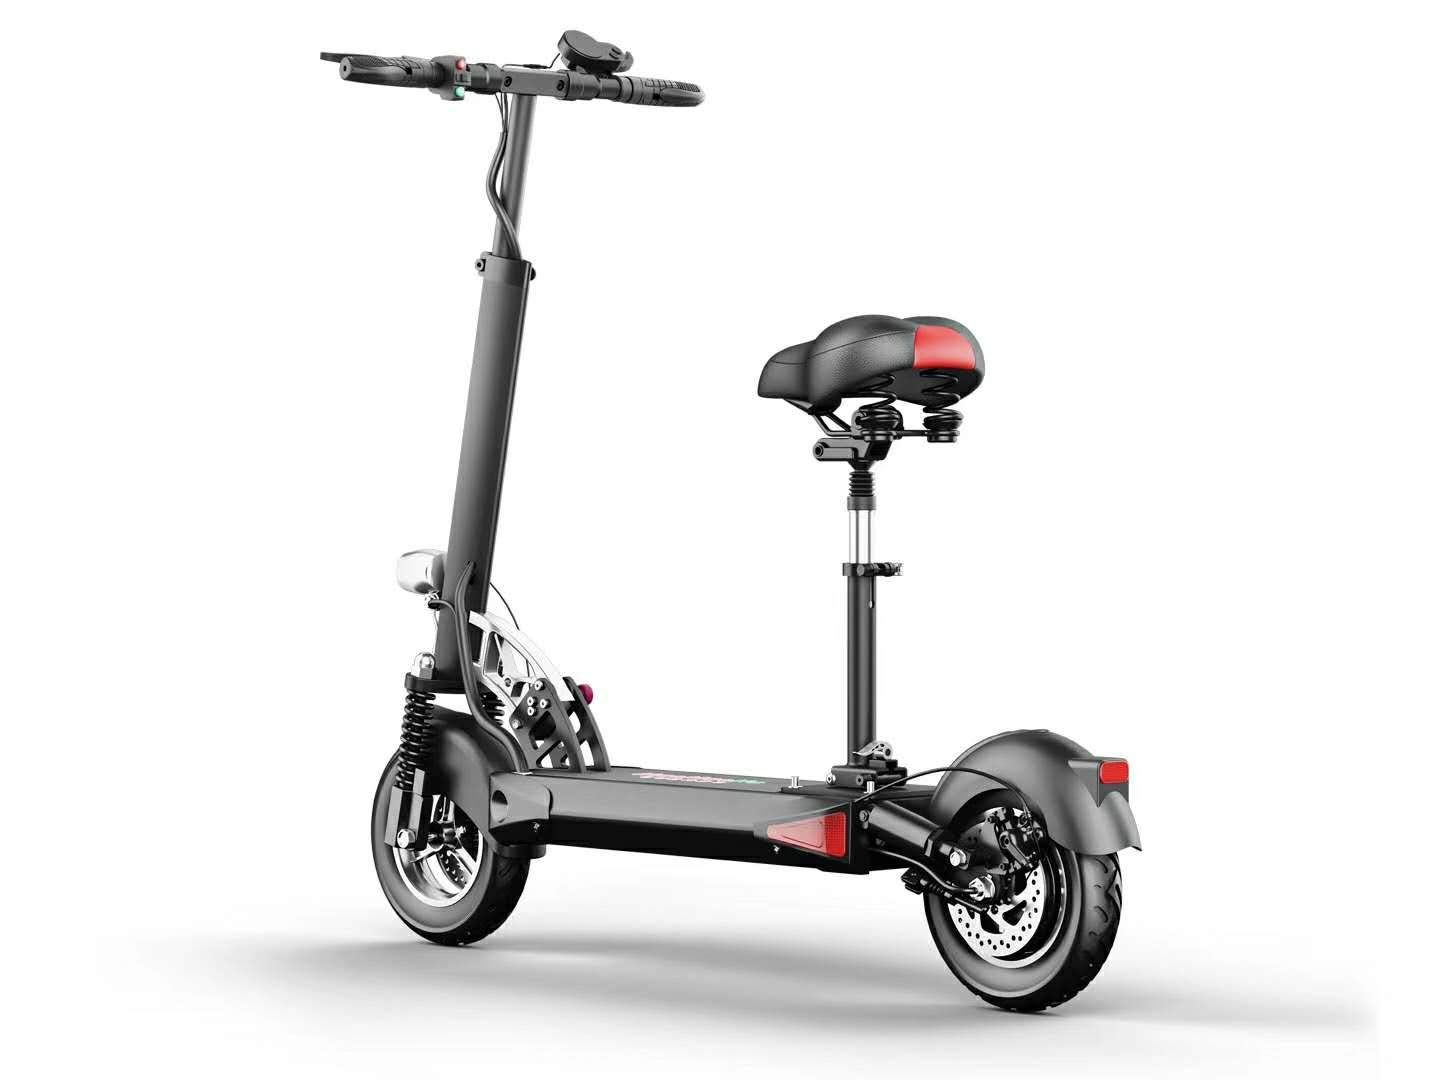 Fastest Electric Scooters 2020 Reviews Buying Guide Electric Scooter With Seat Best Electric Scooter Electric Scooter